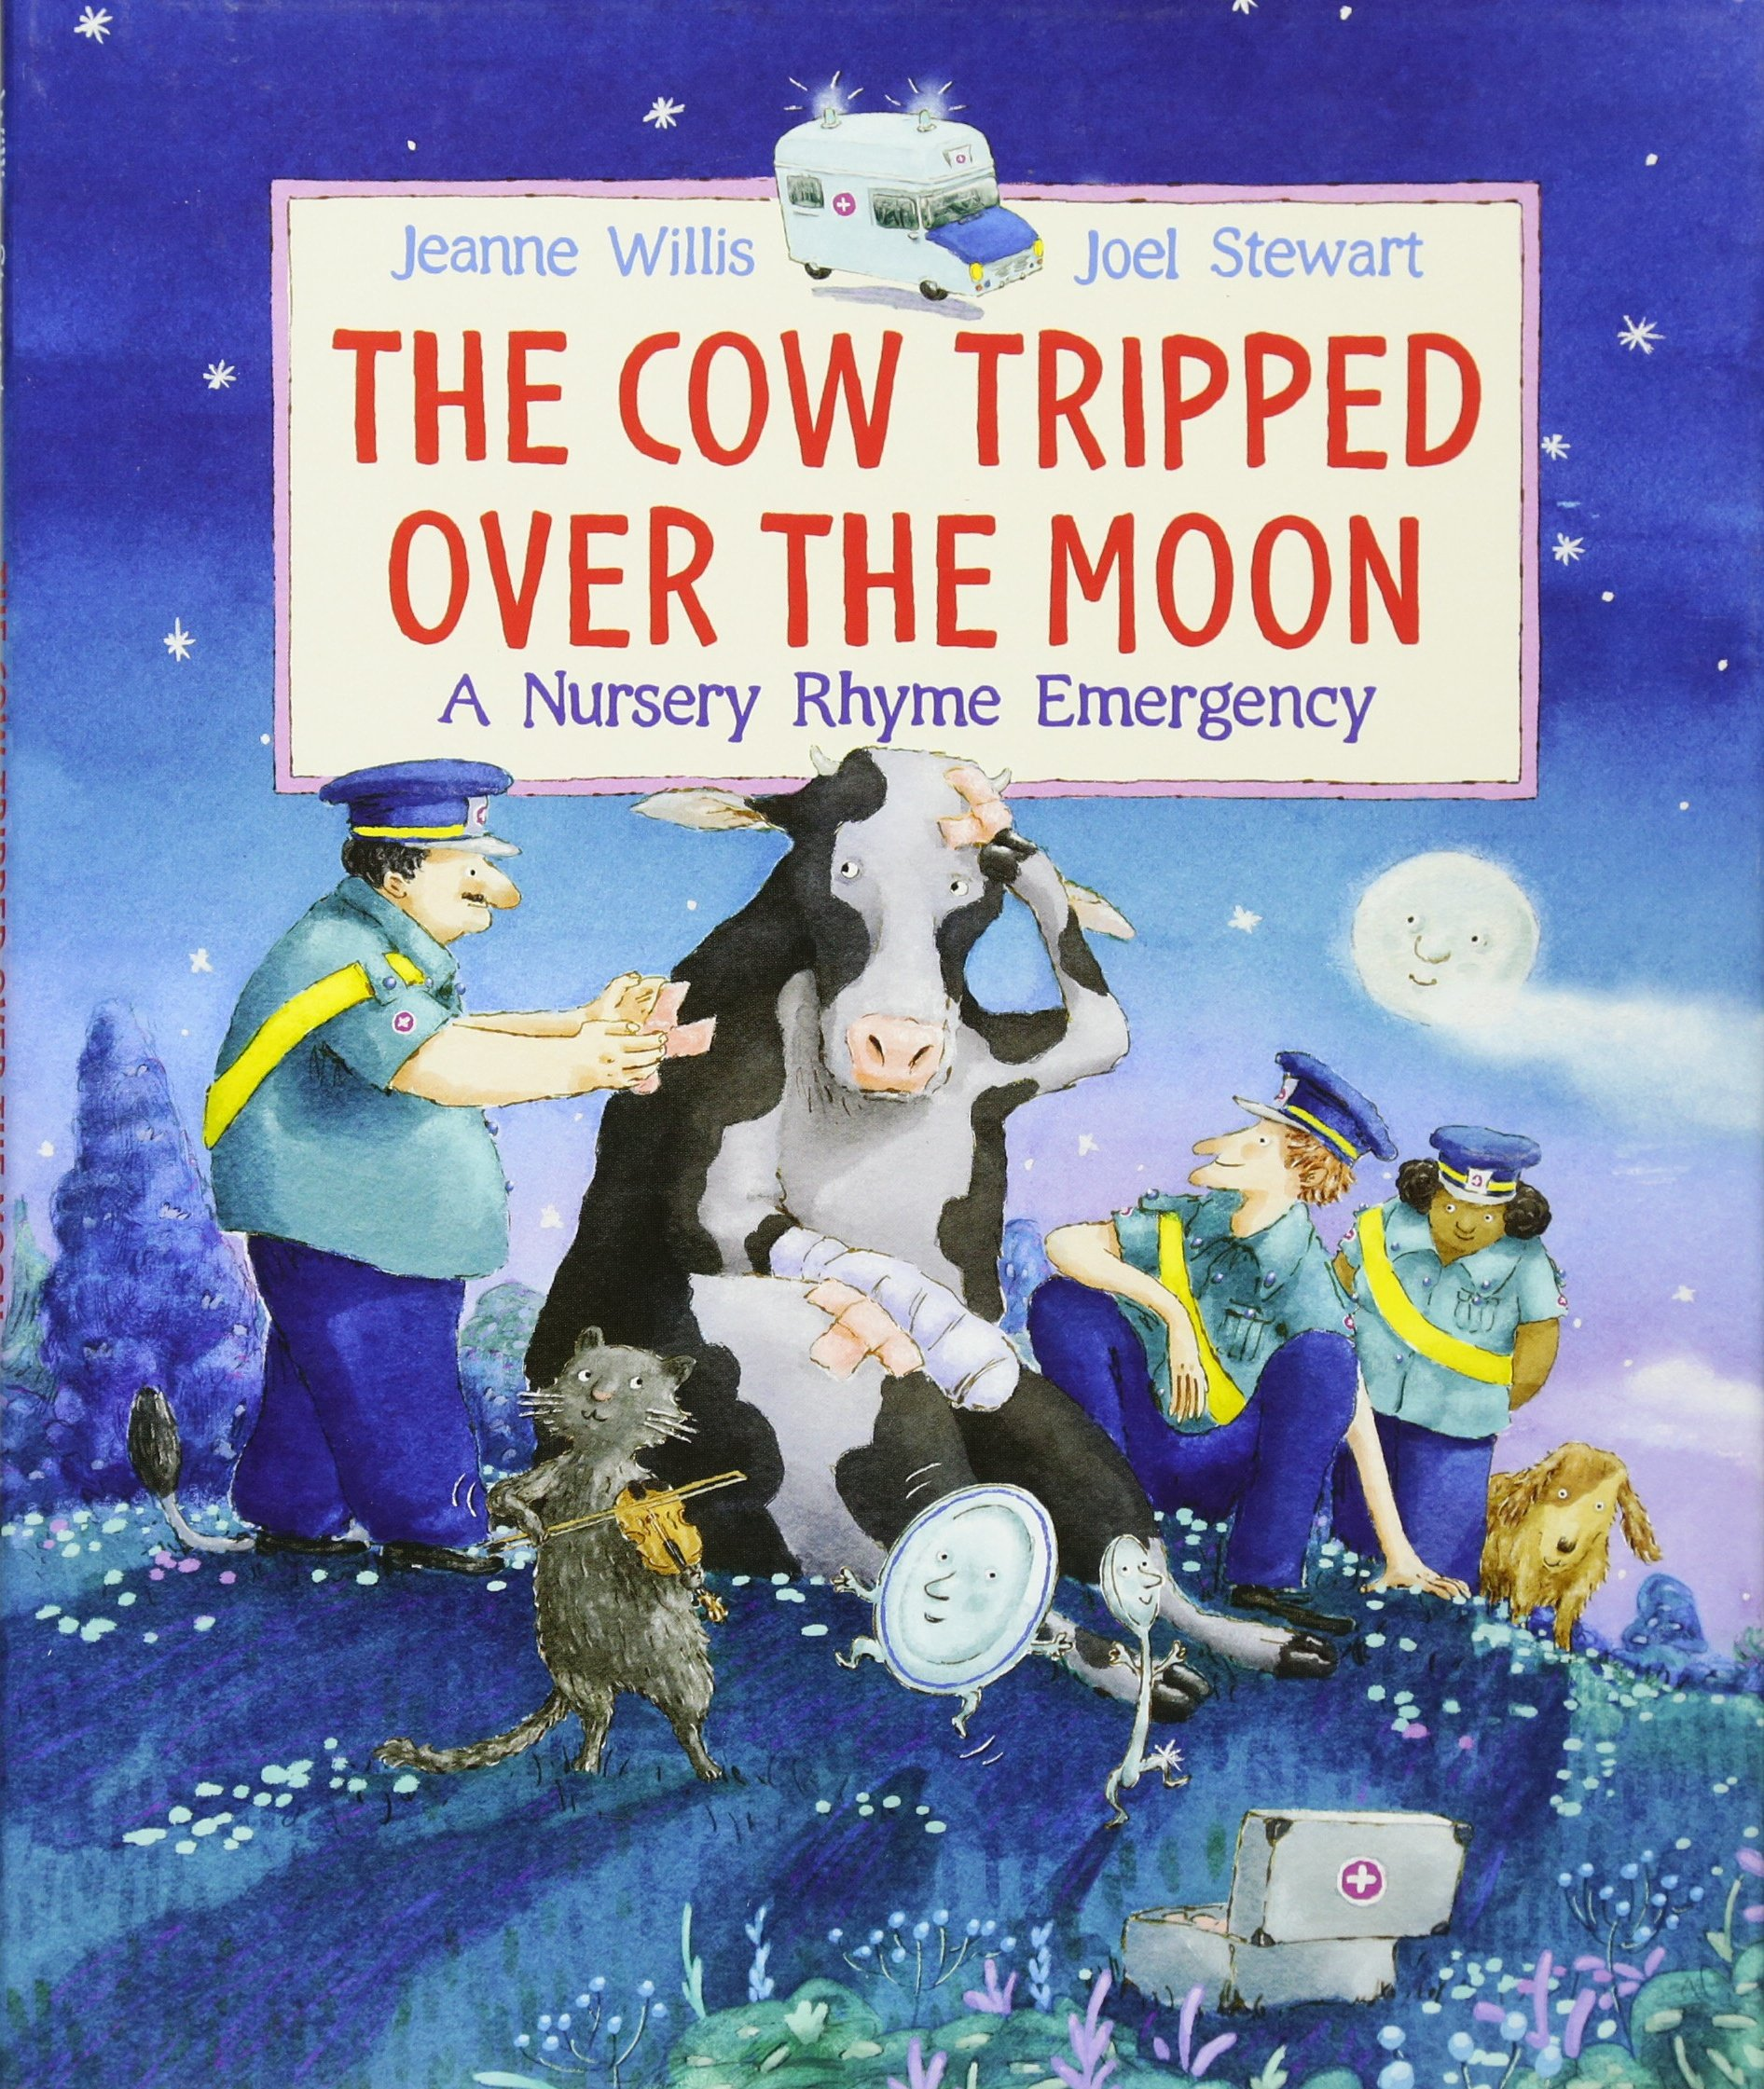 The Cow Tripped Over the Moon:  A Nursery Rhyme Image